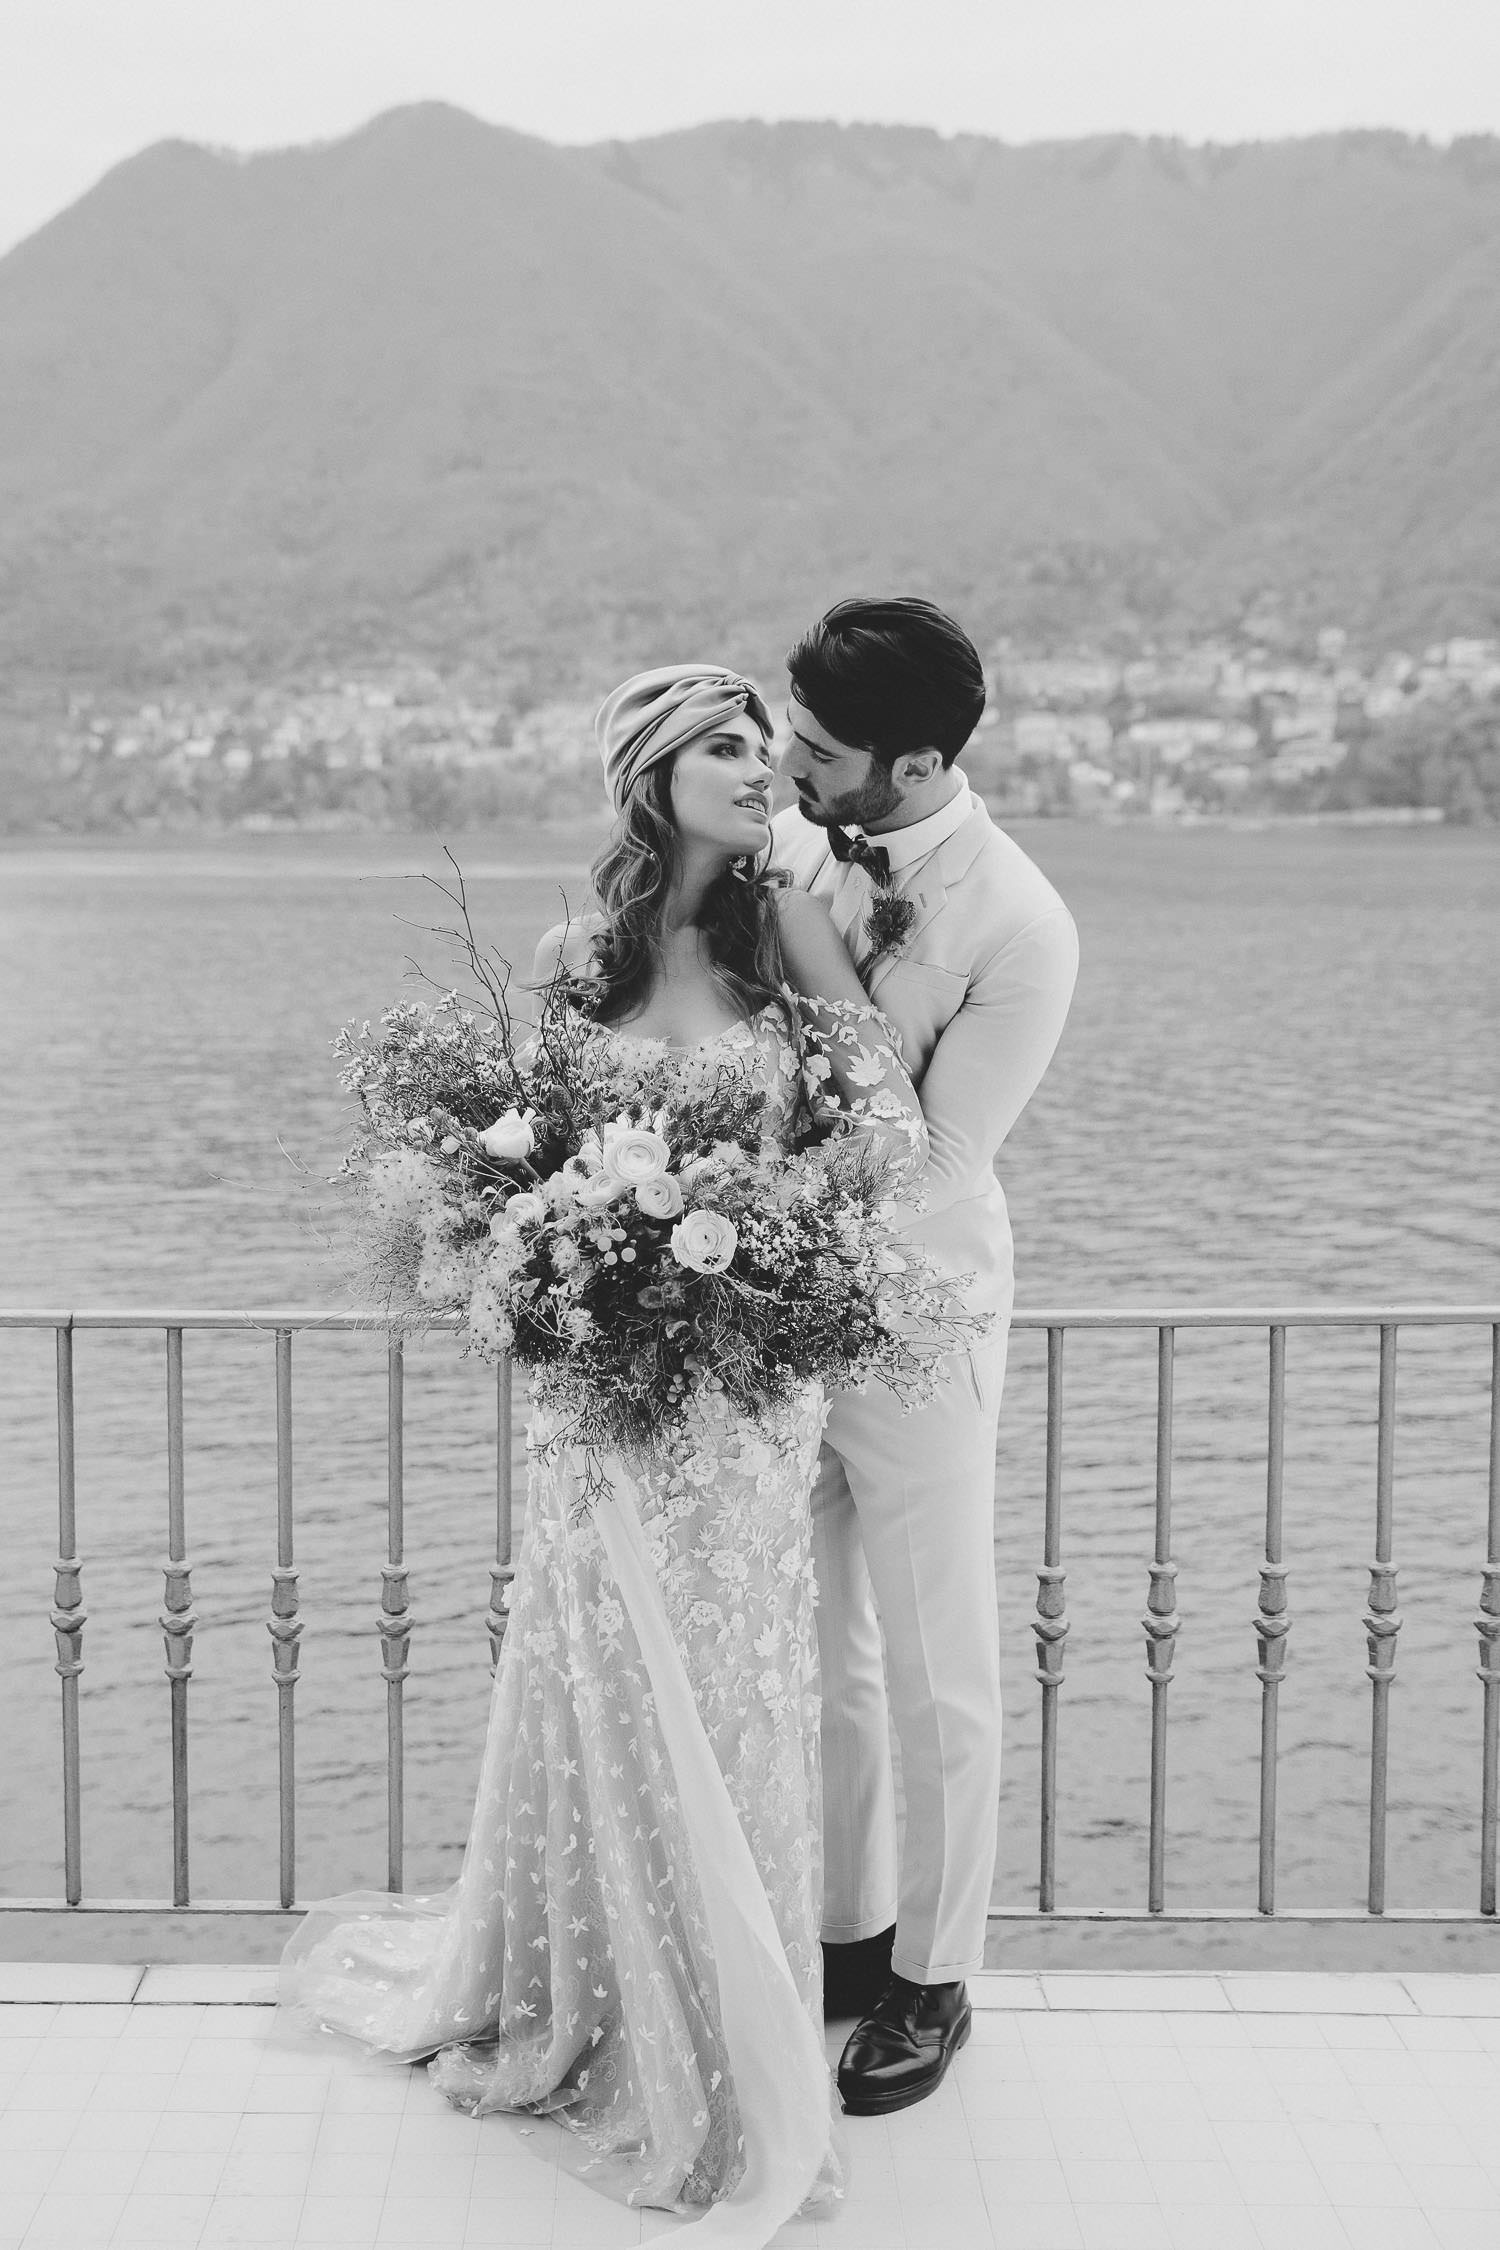 Lake Como exclusive intimate wedding - Wedding venue in Cernobbio | Photo: Camilla Anchisi - Lake Como wedding photographer